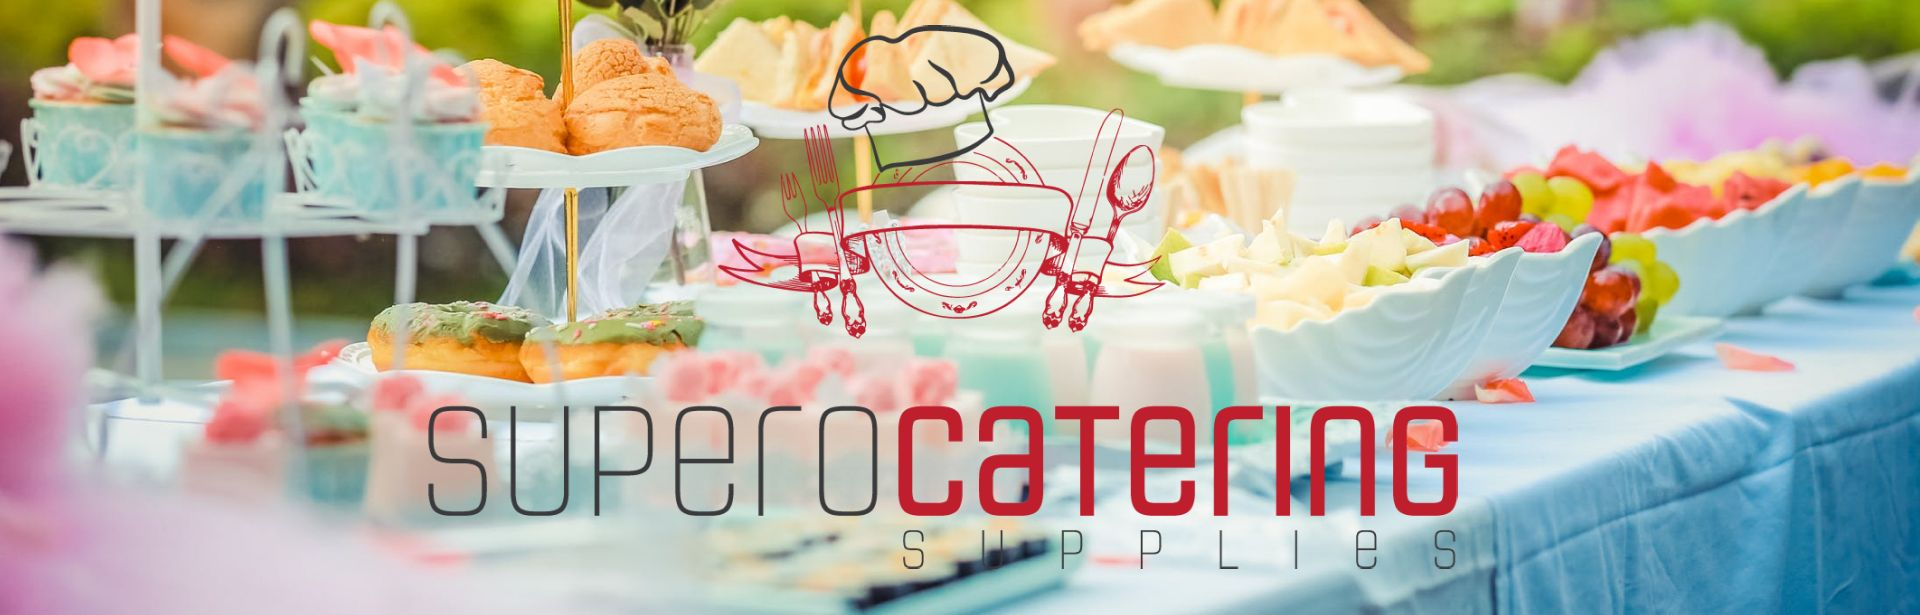 Supero catering supplies